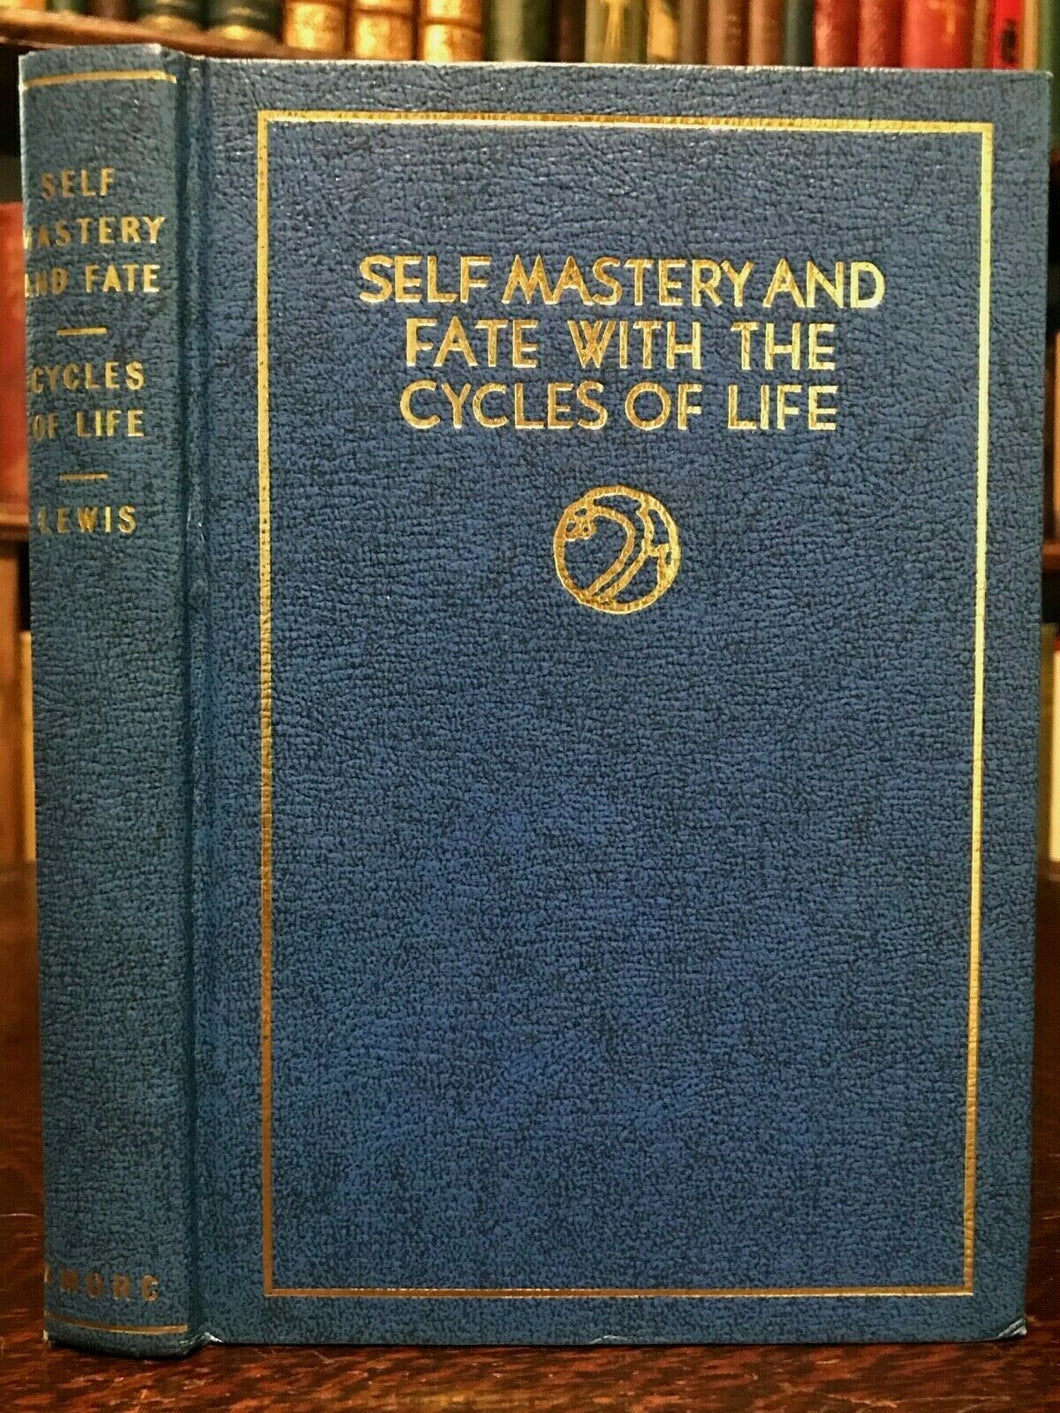 SELF MASTERY AND FATE WITH CYCLES OF LIFE - Lewis ROSICRUCIAN SOUL FATE UNIVERSE